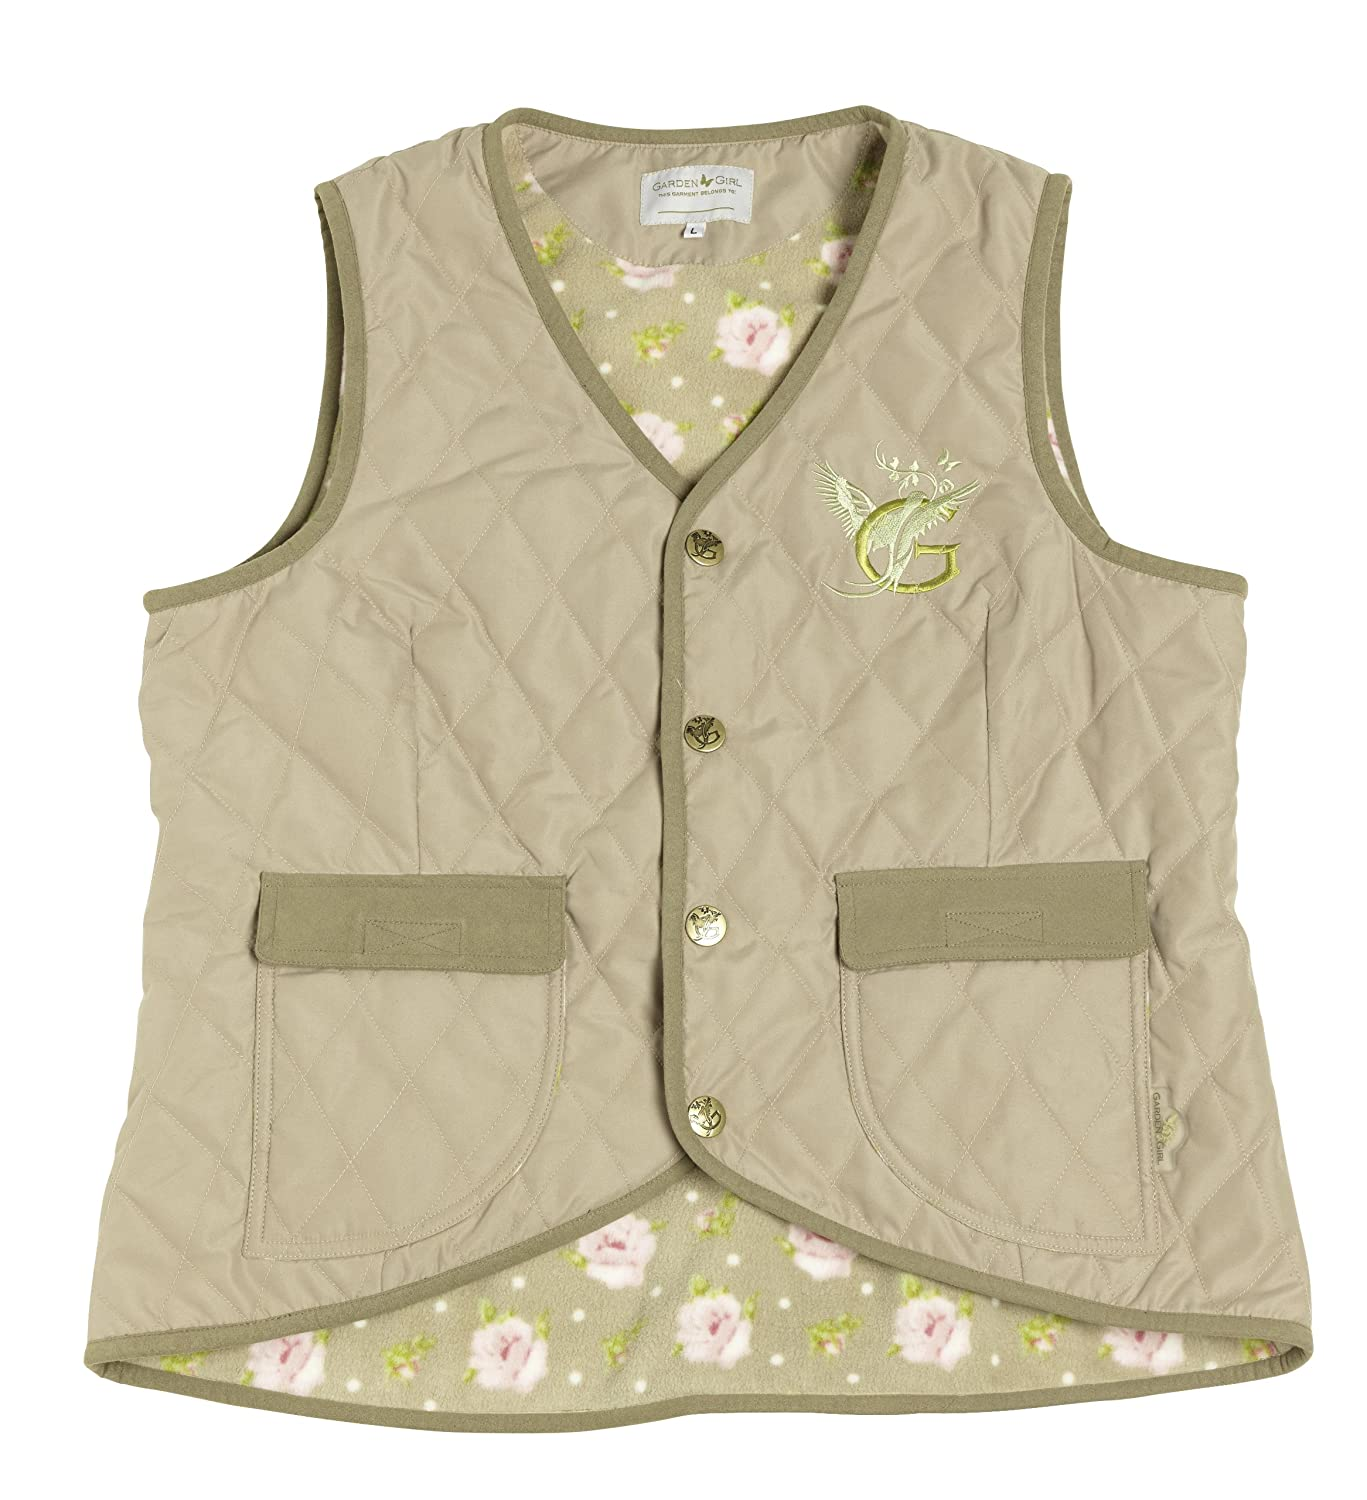 Garden Girl USA Quilted Vest, XX-Large, Beige